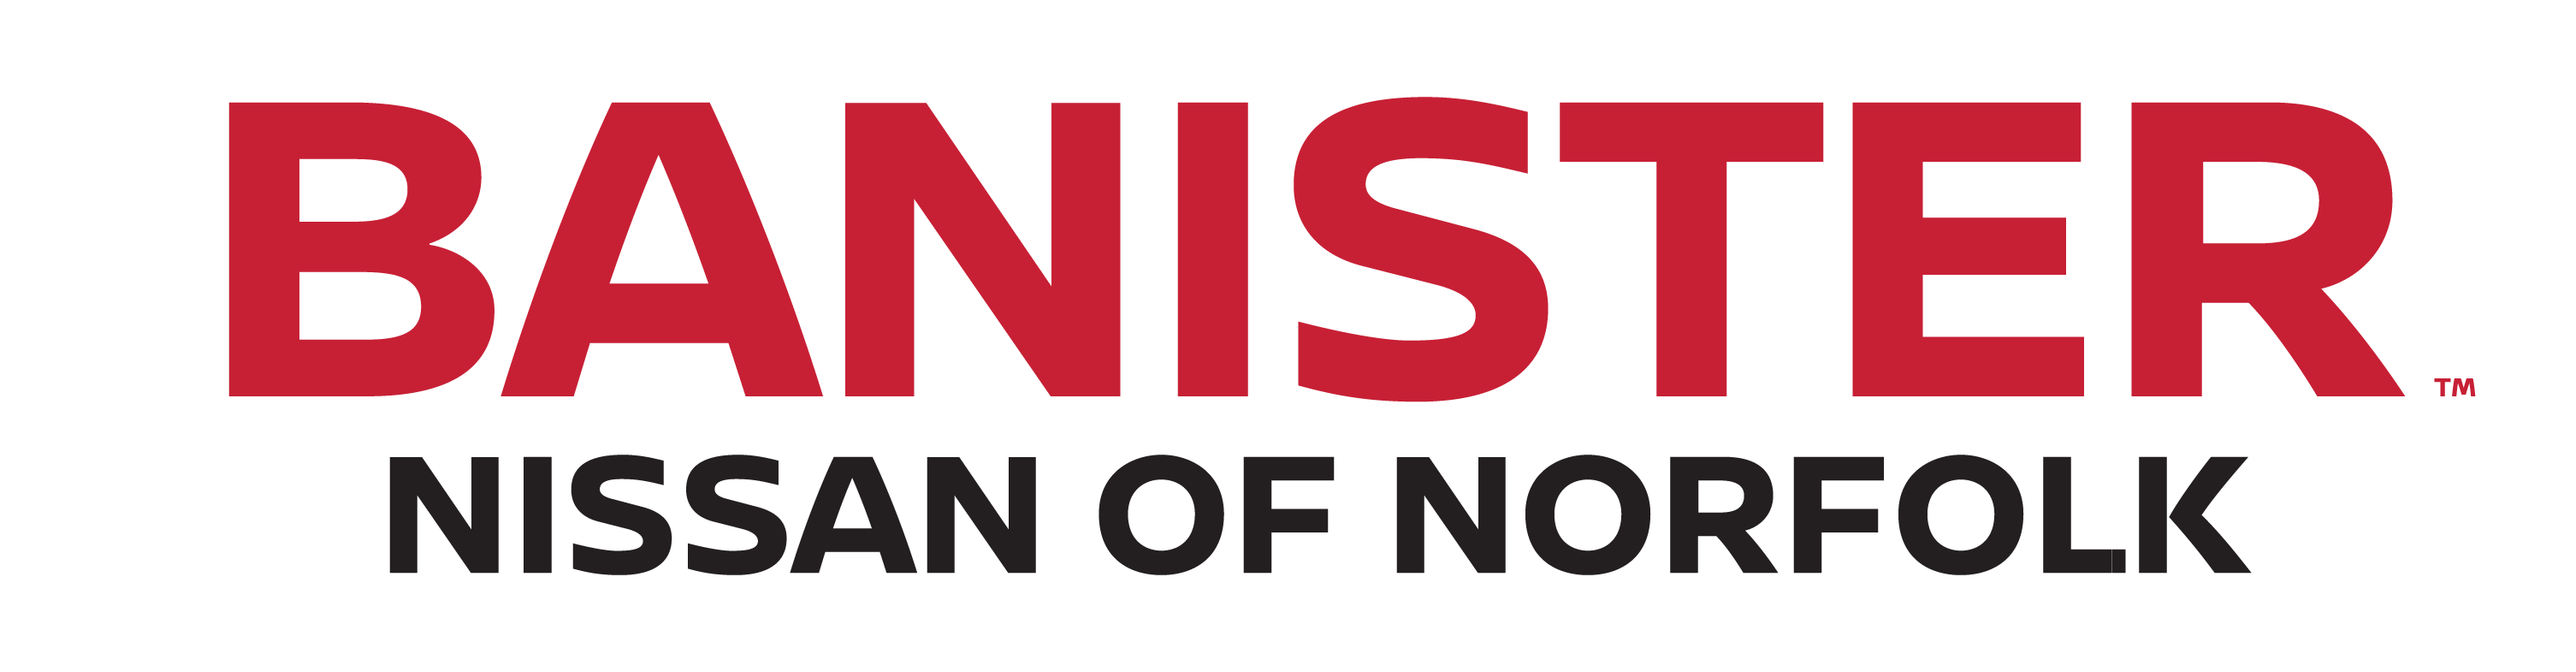 Banister Nissan of Norfolk logo